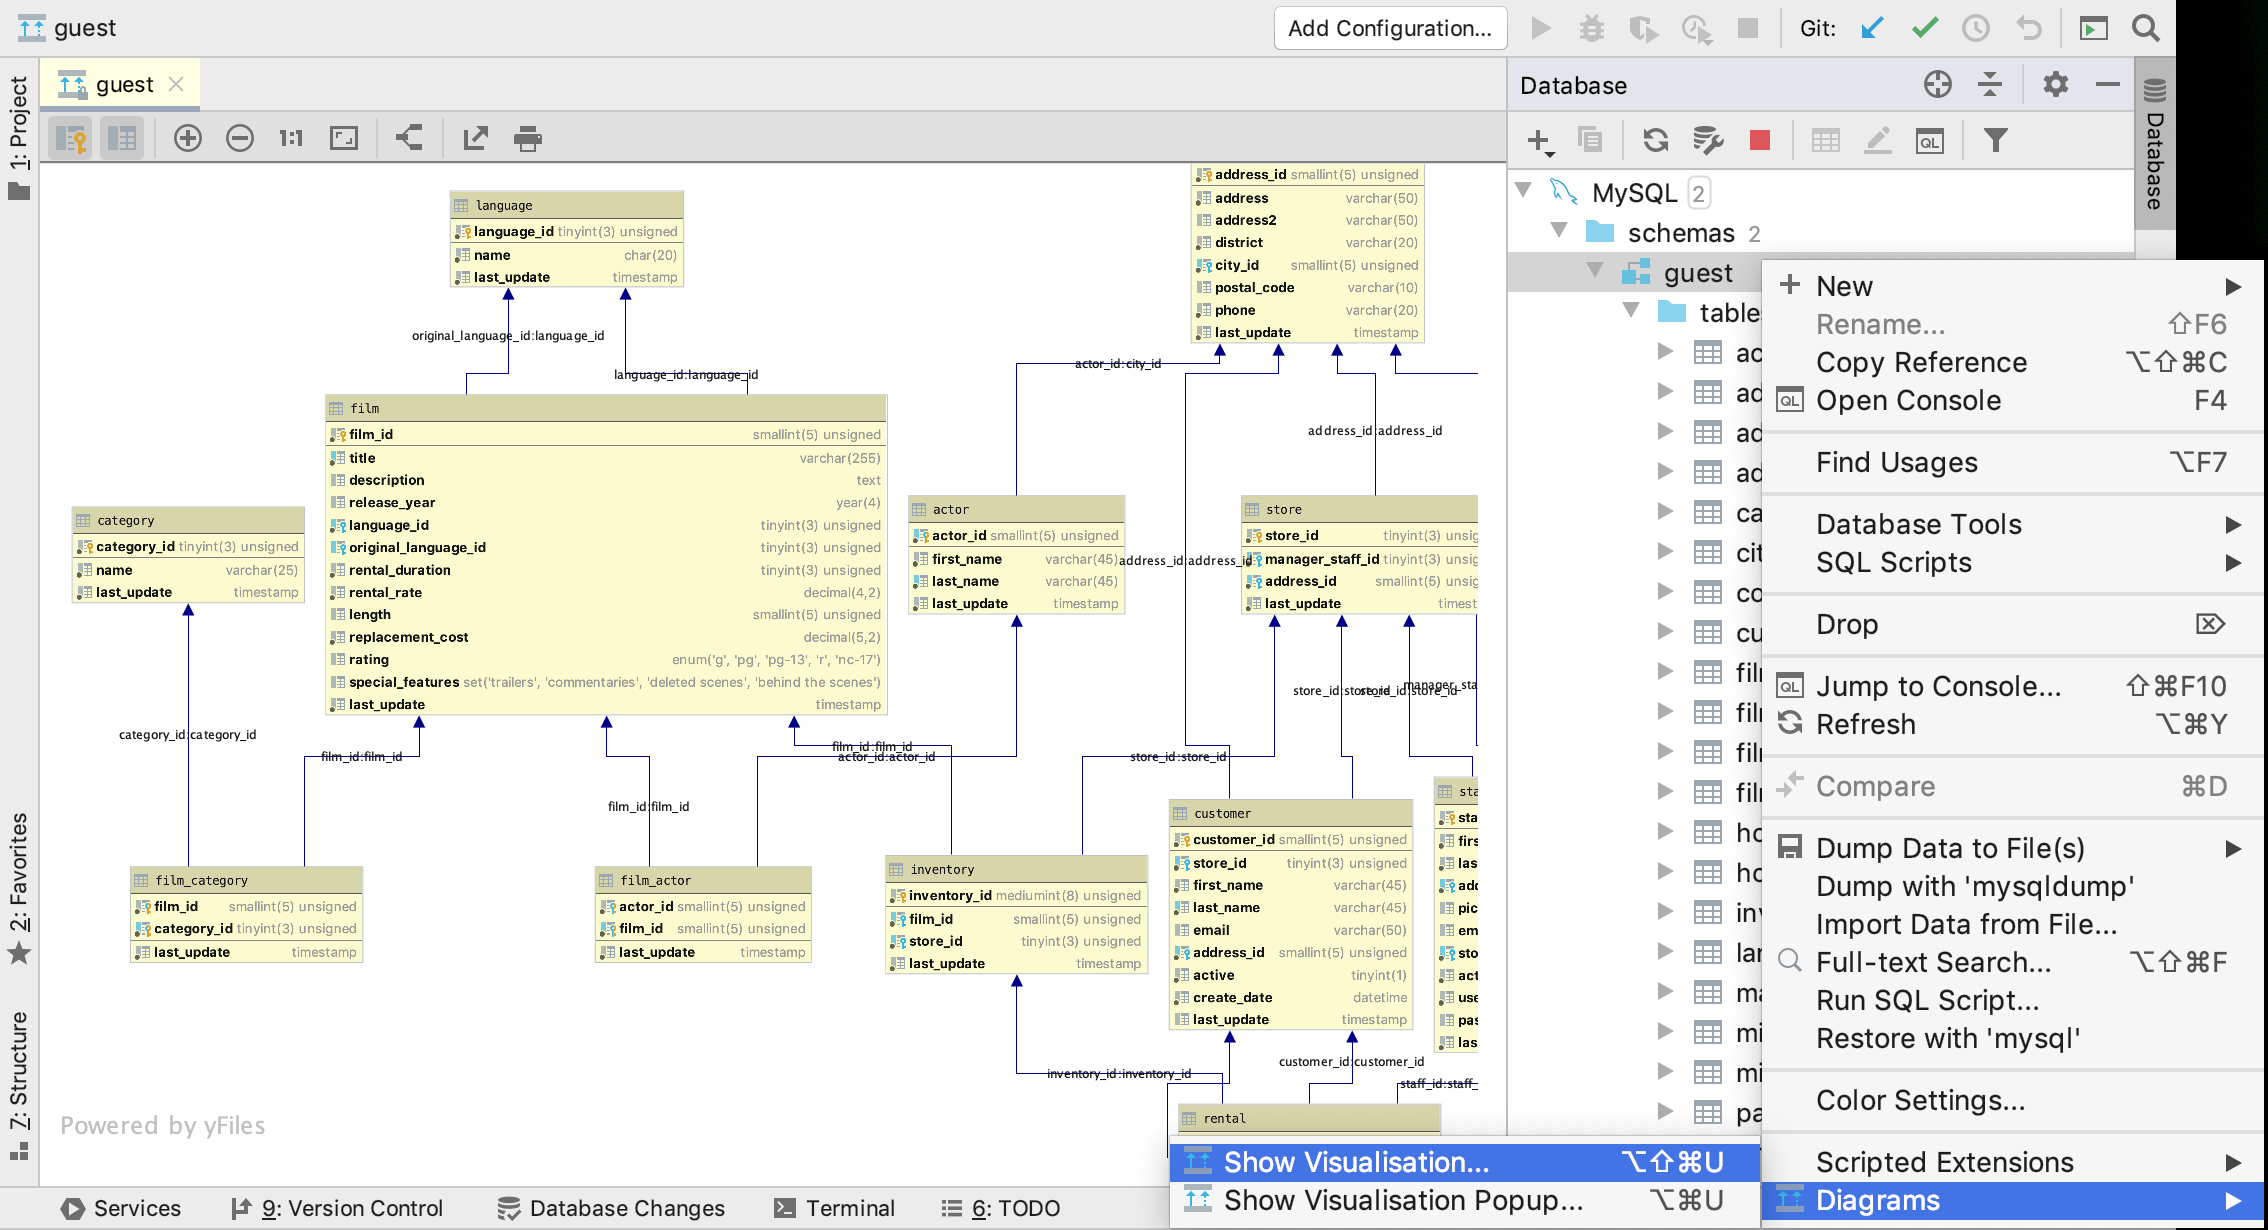 Creating Diagrams - Help | Intellij Idea regarding Er Diagram From Json